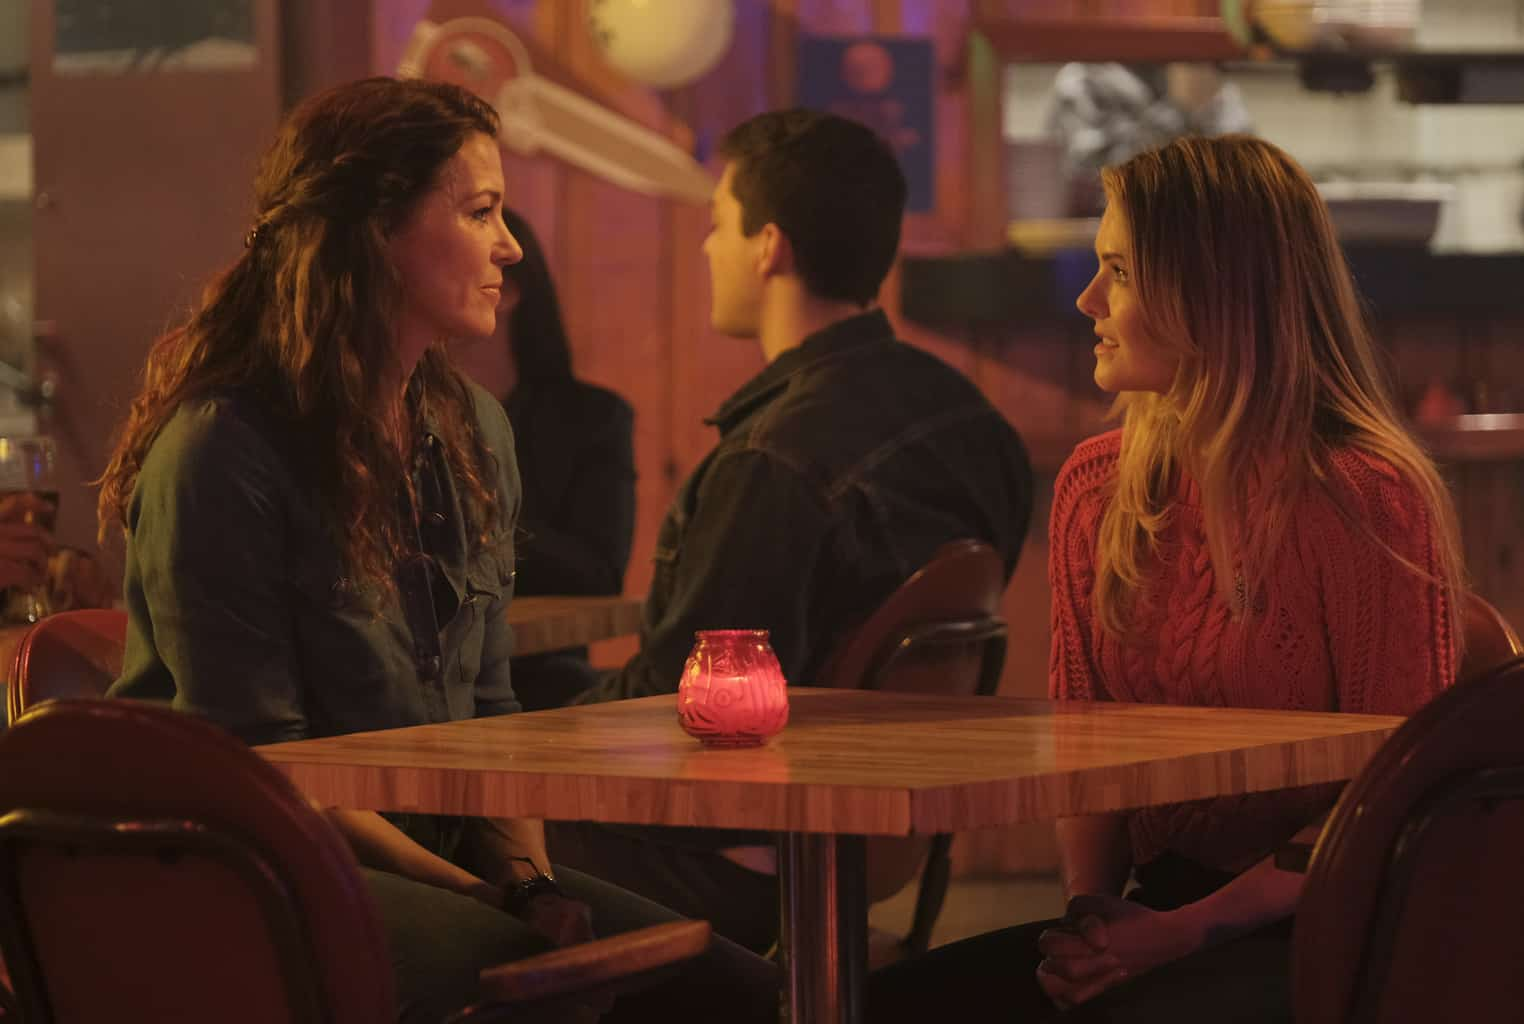 The Bold Type Season 2 Episode 9 Meghann Fahy As Sutton Brady Rya Kihlstedt As Babs Brady Tell Tale Tv Stay up to date on rya kihlstedt and track rya kihlstedt in pictures and the press. meghann fahy as sutton brady rya